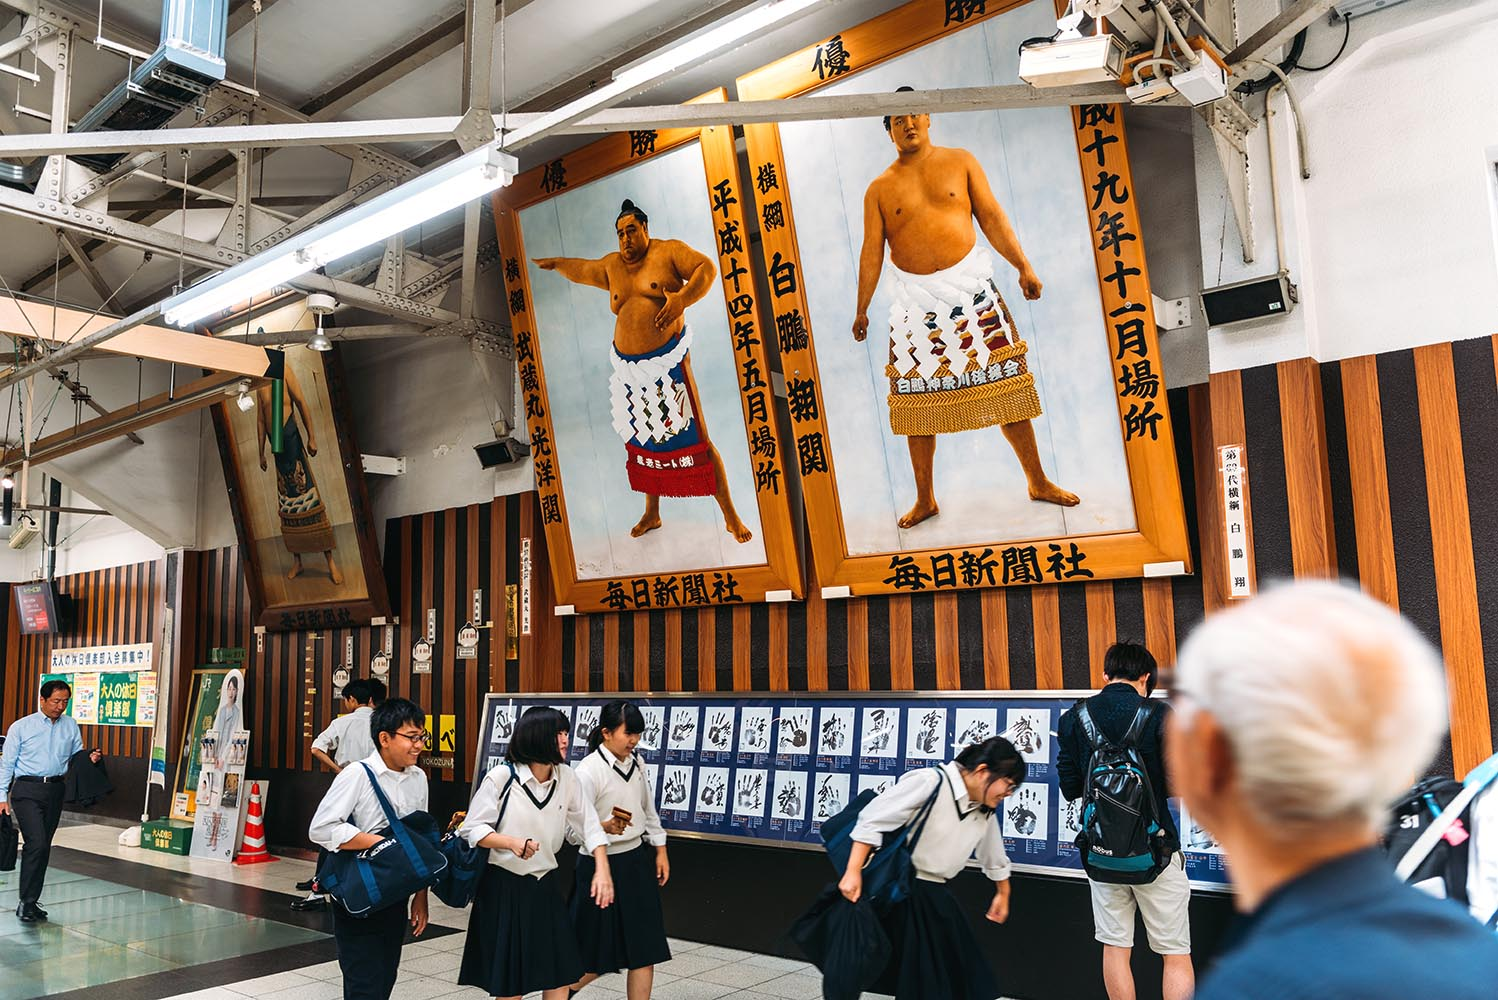 Subway station close to Arena for traditional Sumo wrestling in